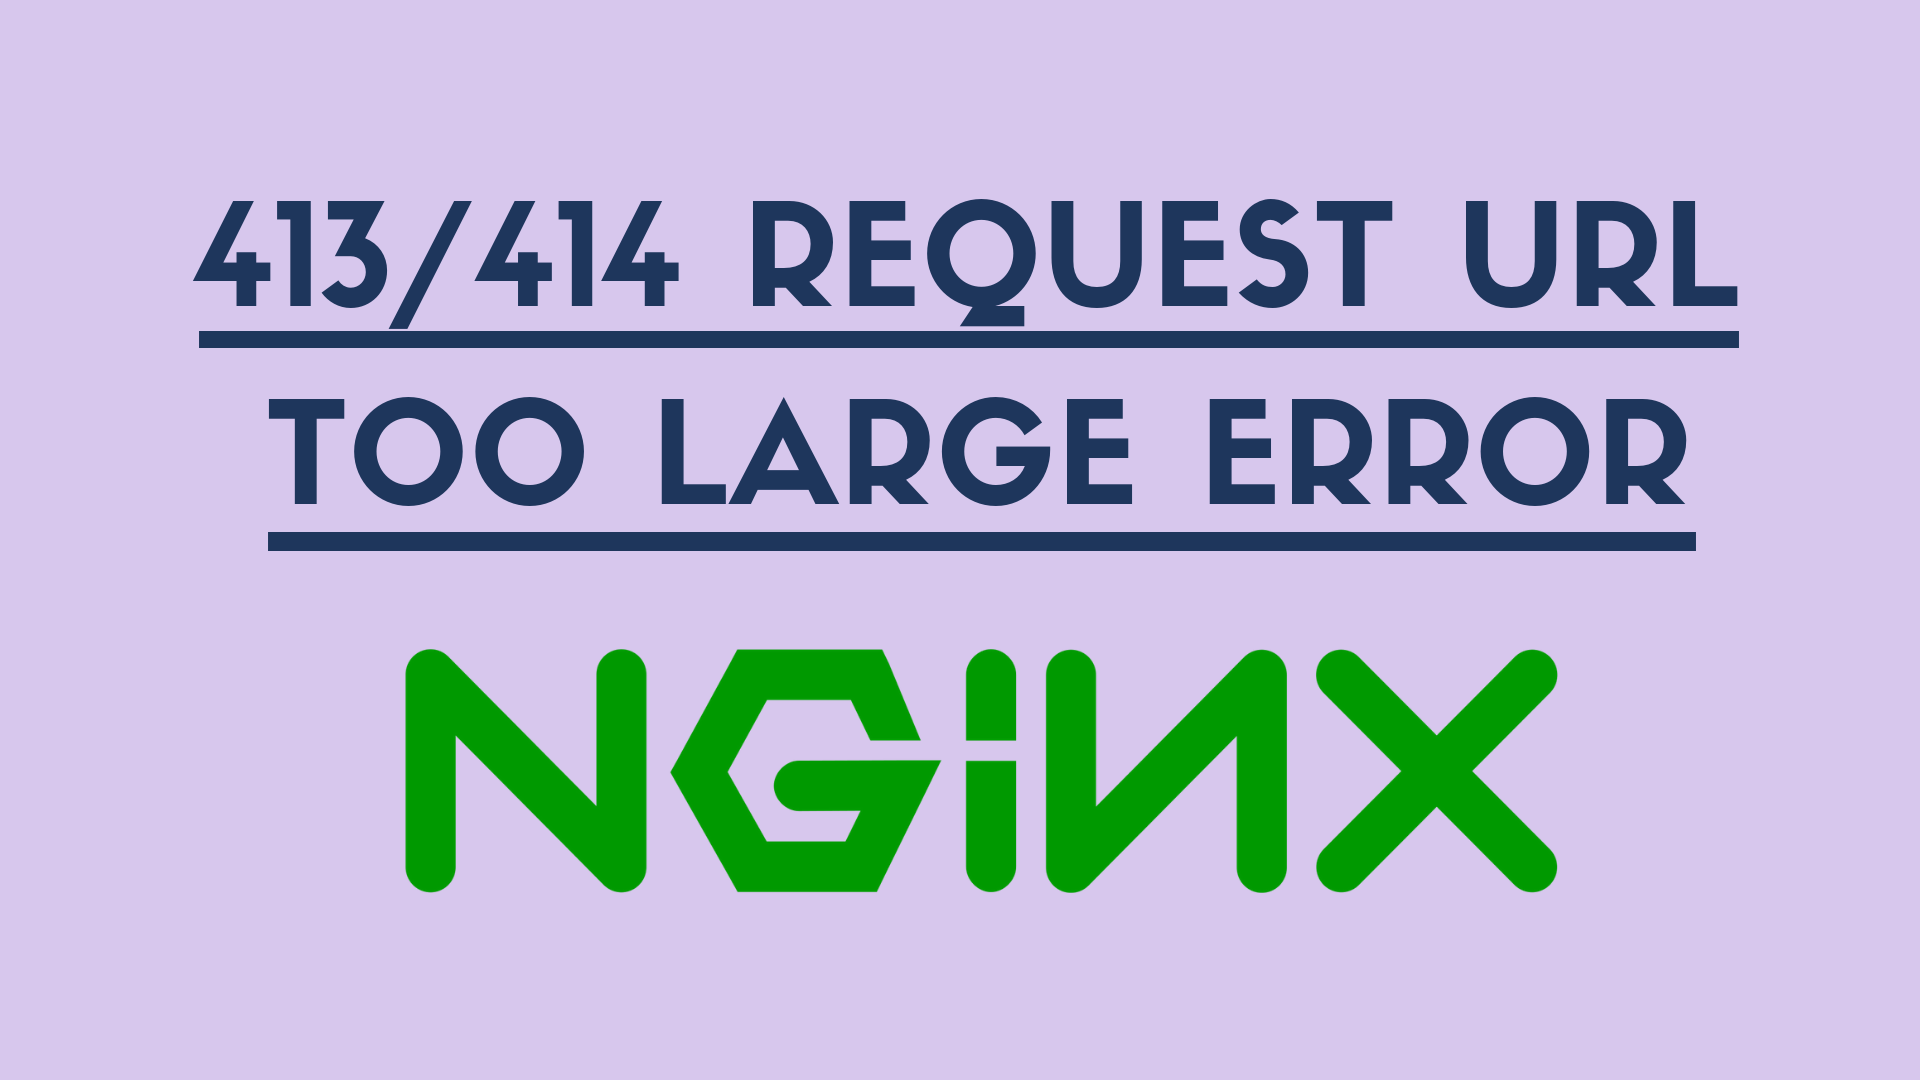 how to resolve 413/414 nginx issue